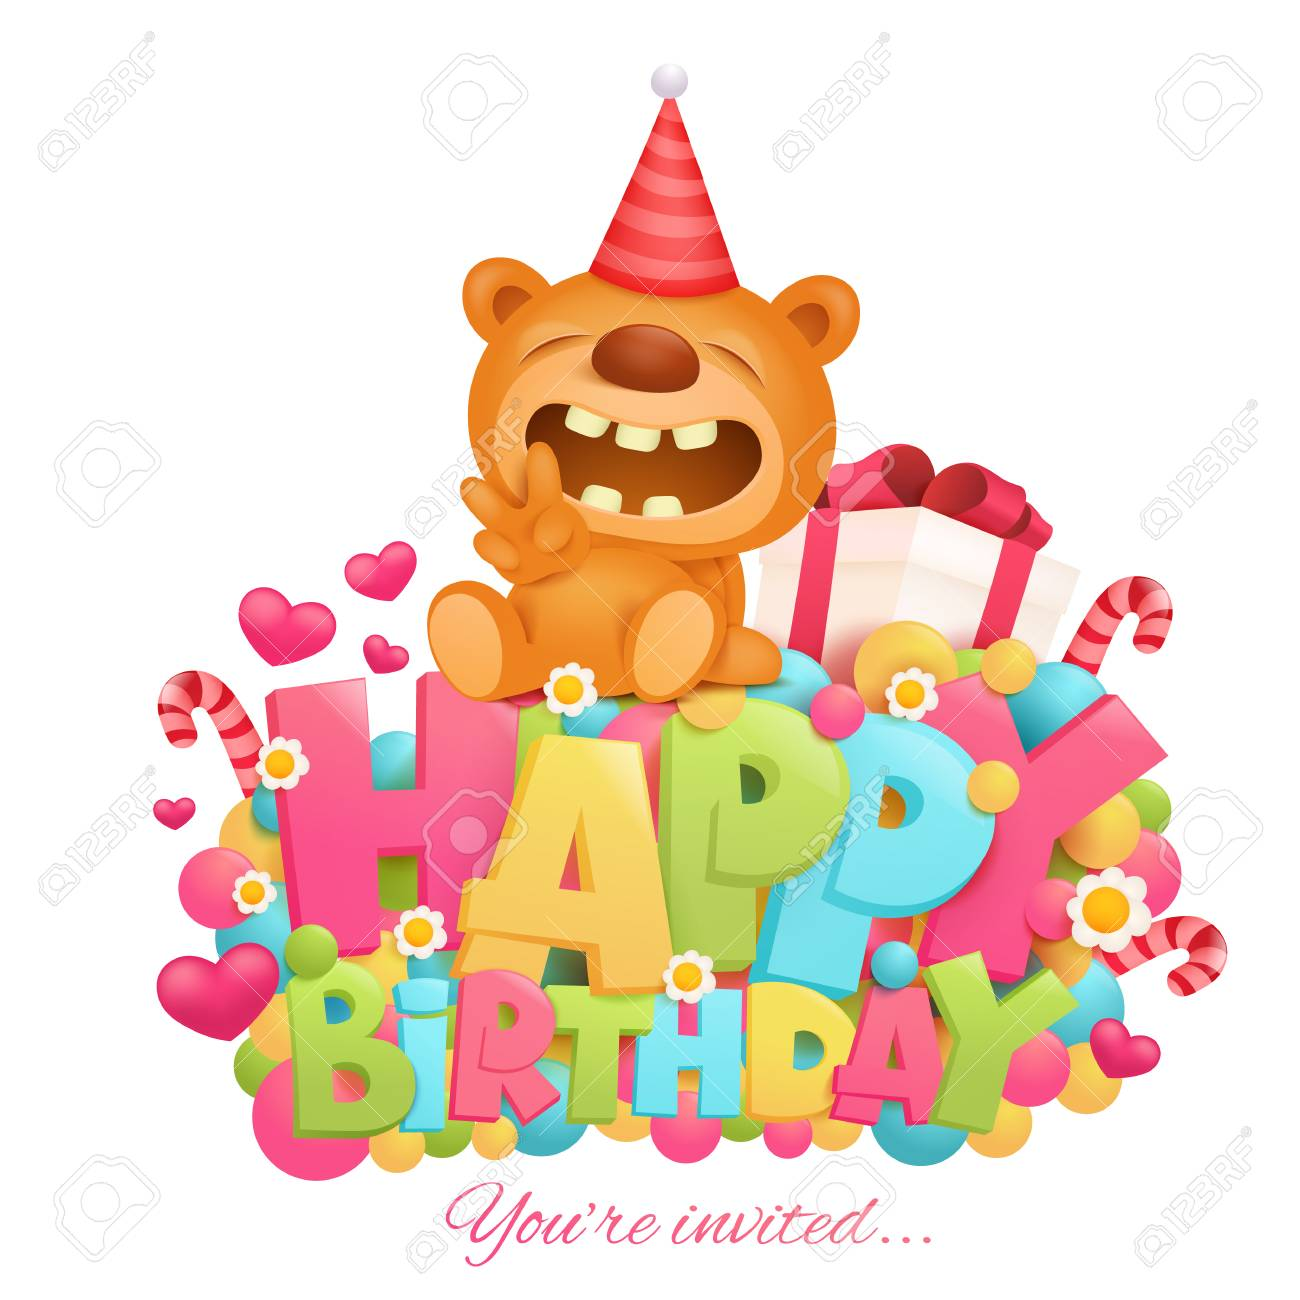 Happy Birthday Invitation Card Template With Toy Teddy Bear Cartoon ...